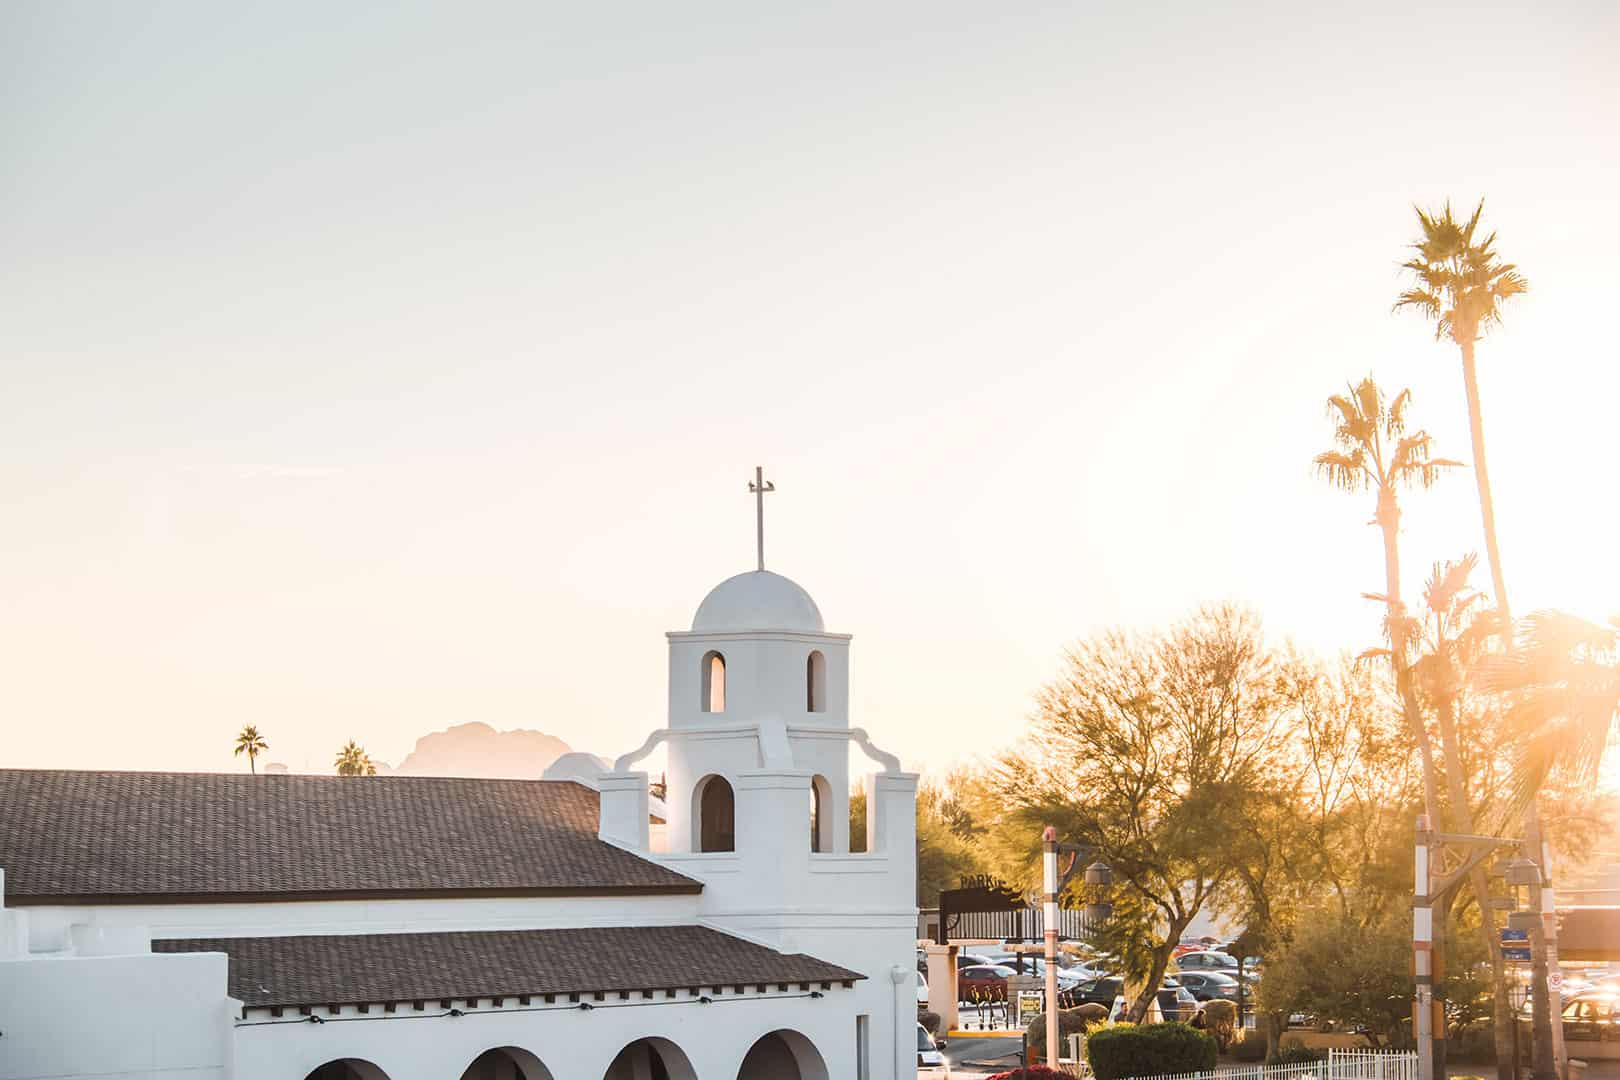 The Mission in downtown Scottsdale, Arizona